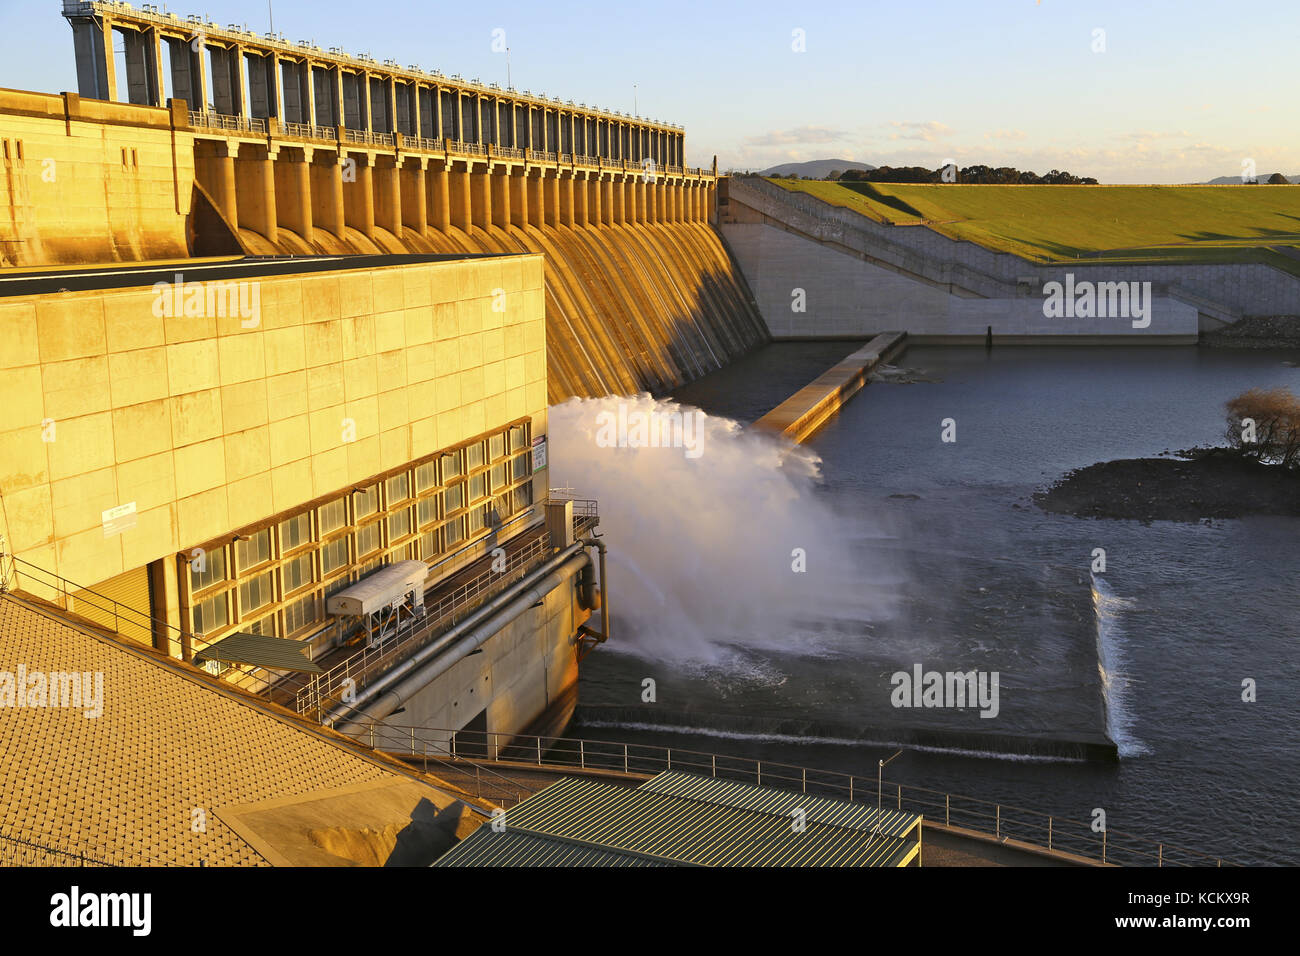 Hume Dam and spillway on the Murray River, border of New South Wales and Victoria near Albury and Wodonga, Australia - Stock Image